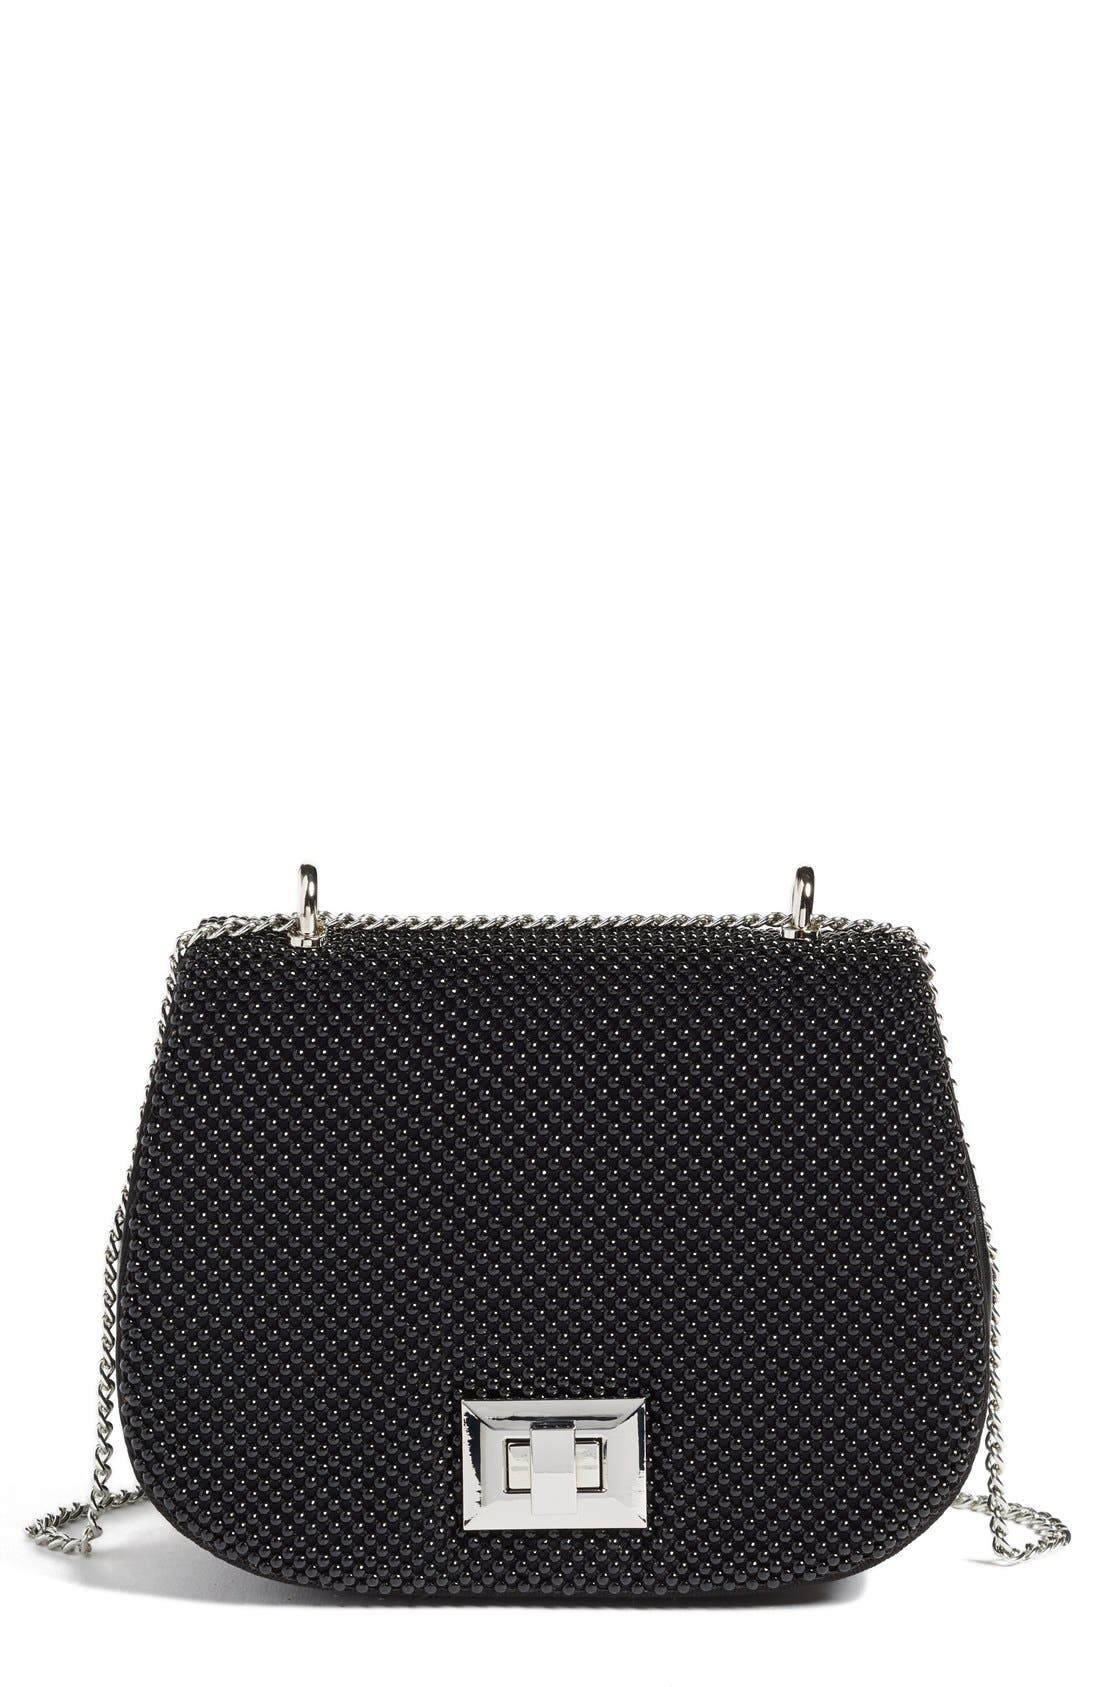 Whiting & Davis Bubble Mesh Saddle Bag